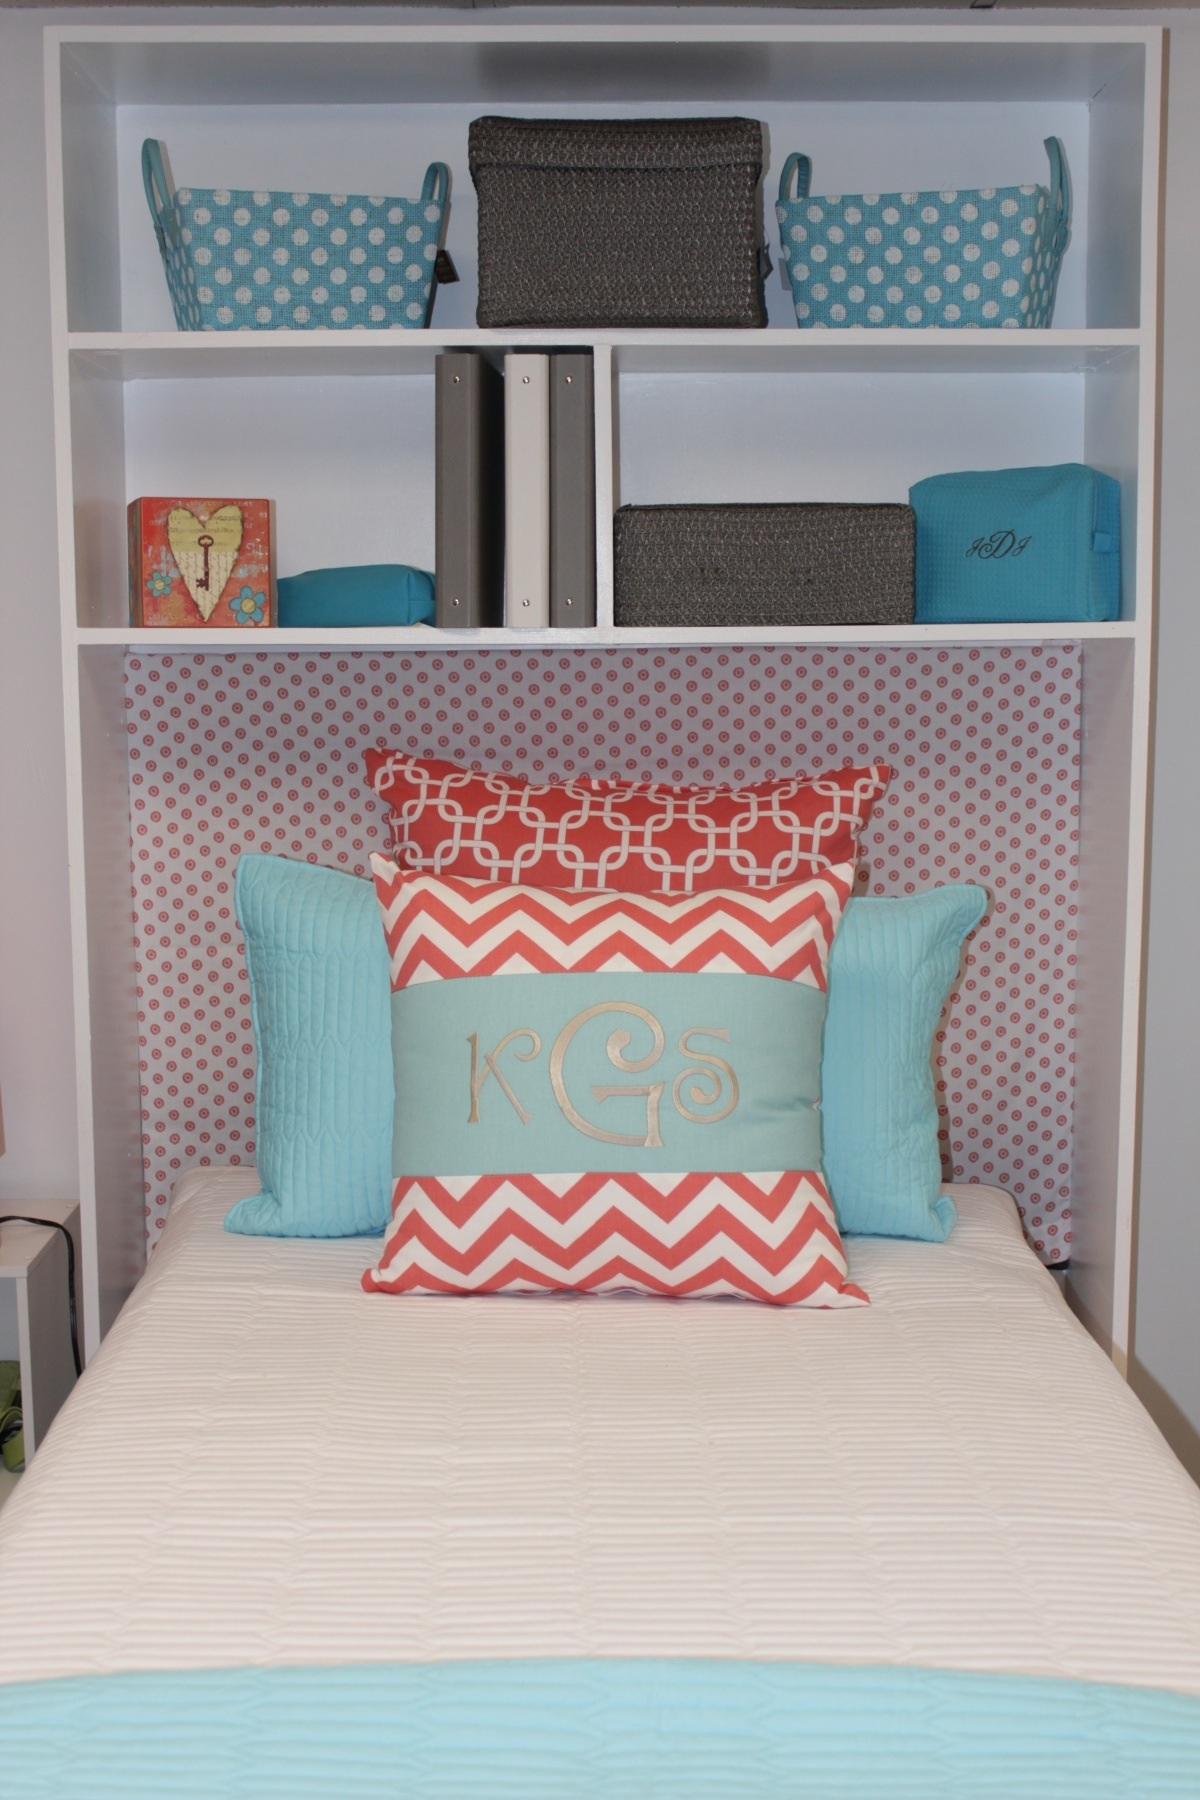 Image my dorm decor for Storage above bed ideas